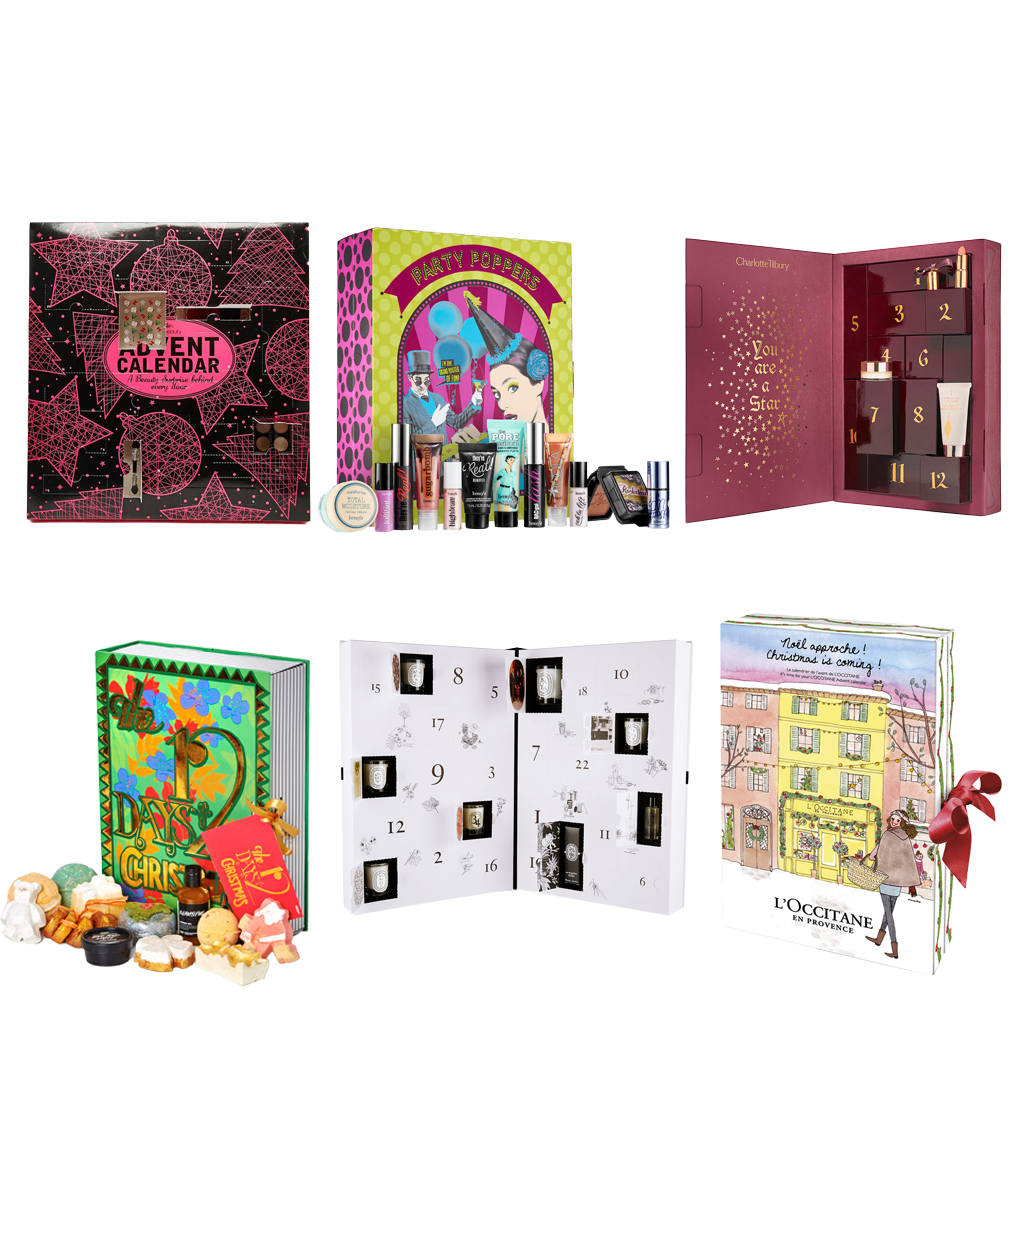 8 Beauty Advent Calendars to Welcome the Holiday Season